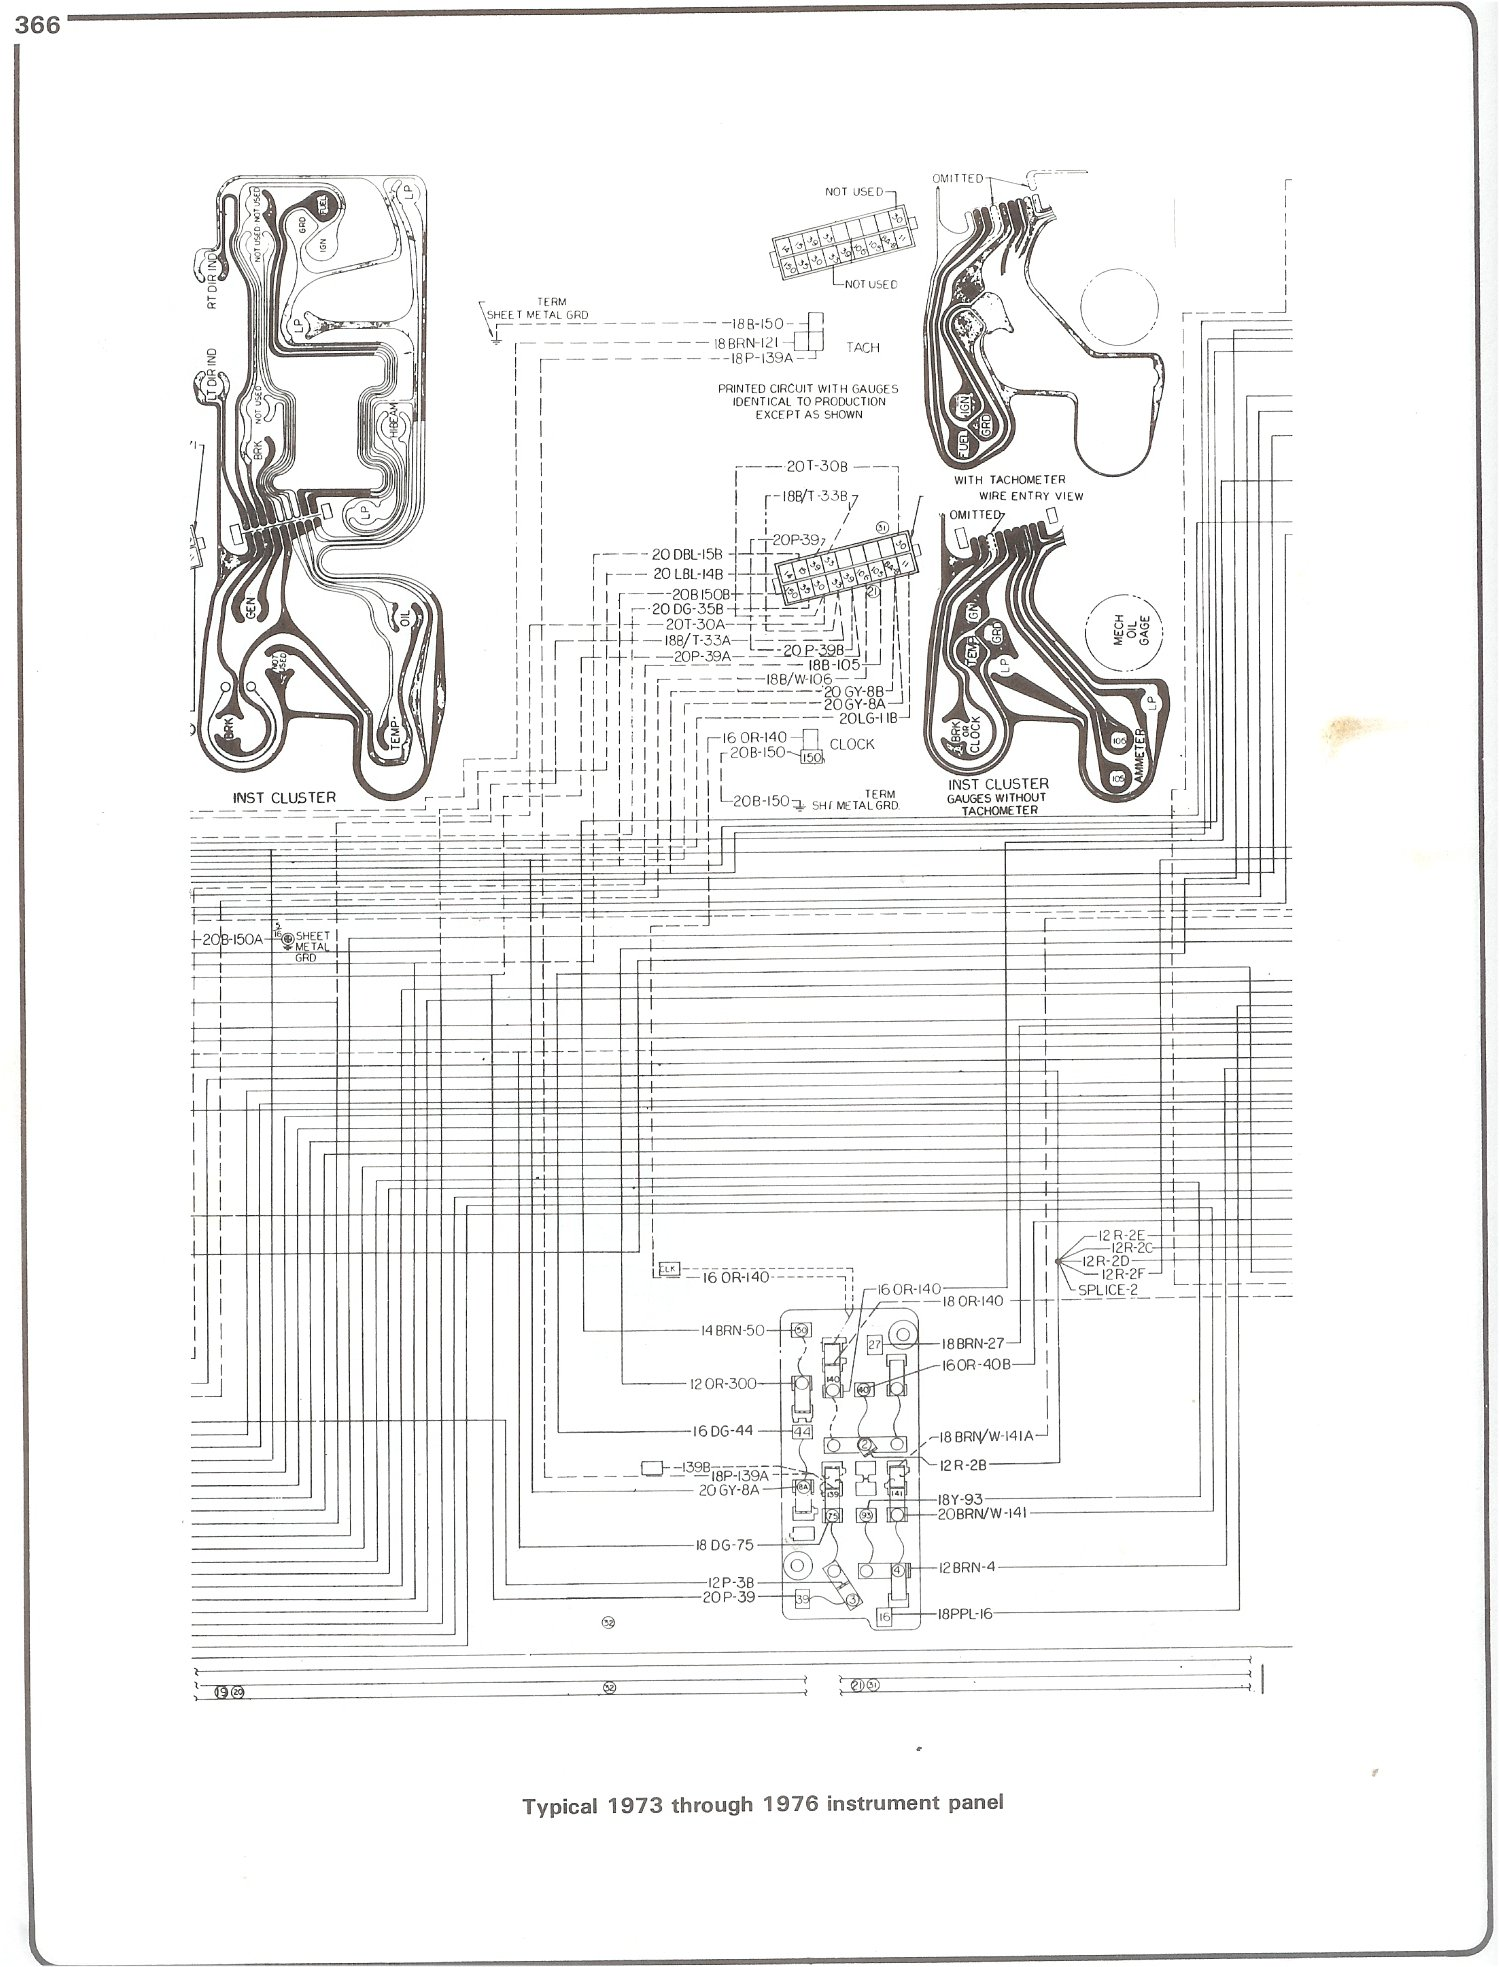 73 76_instrument complete 73 87 wiring diagrams 1982 chevy truck engine wiring diagram at reclaimingppi.co